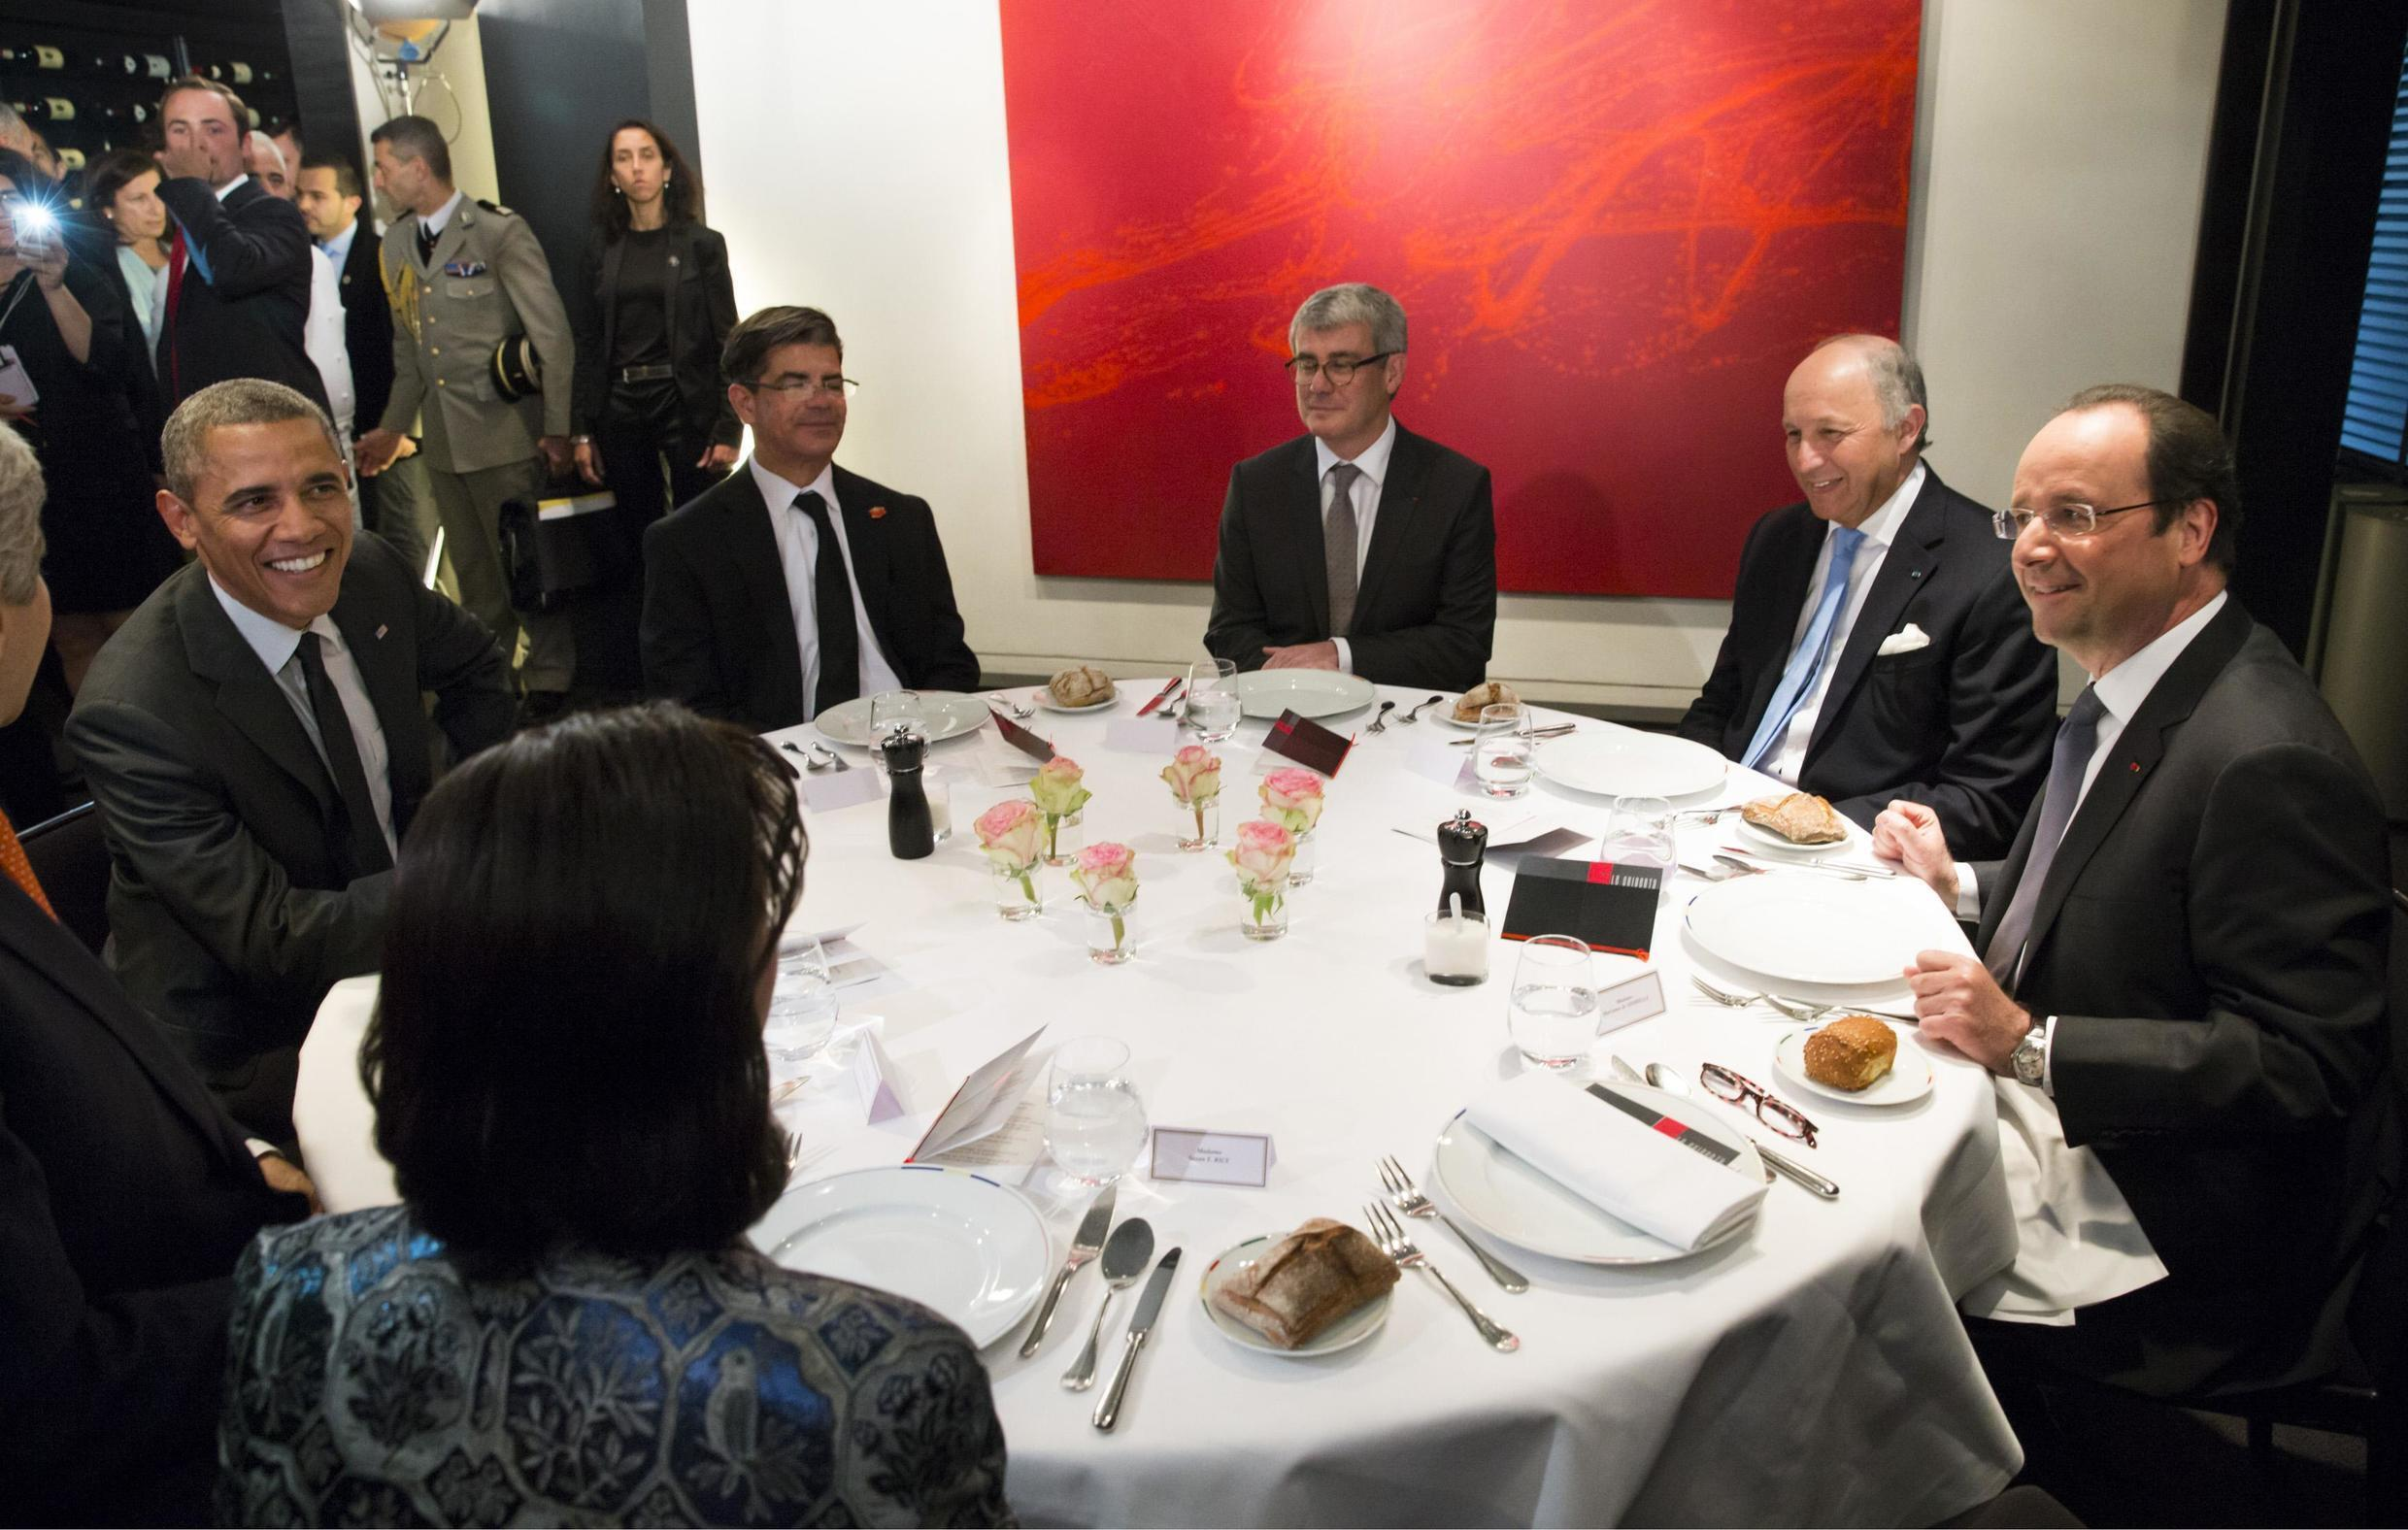 US President Barack Obama (L) dines with French Foreign Minister Laurent Fabius (2nd R) and President Francois Hollande (R) in Paris